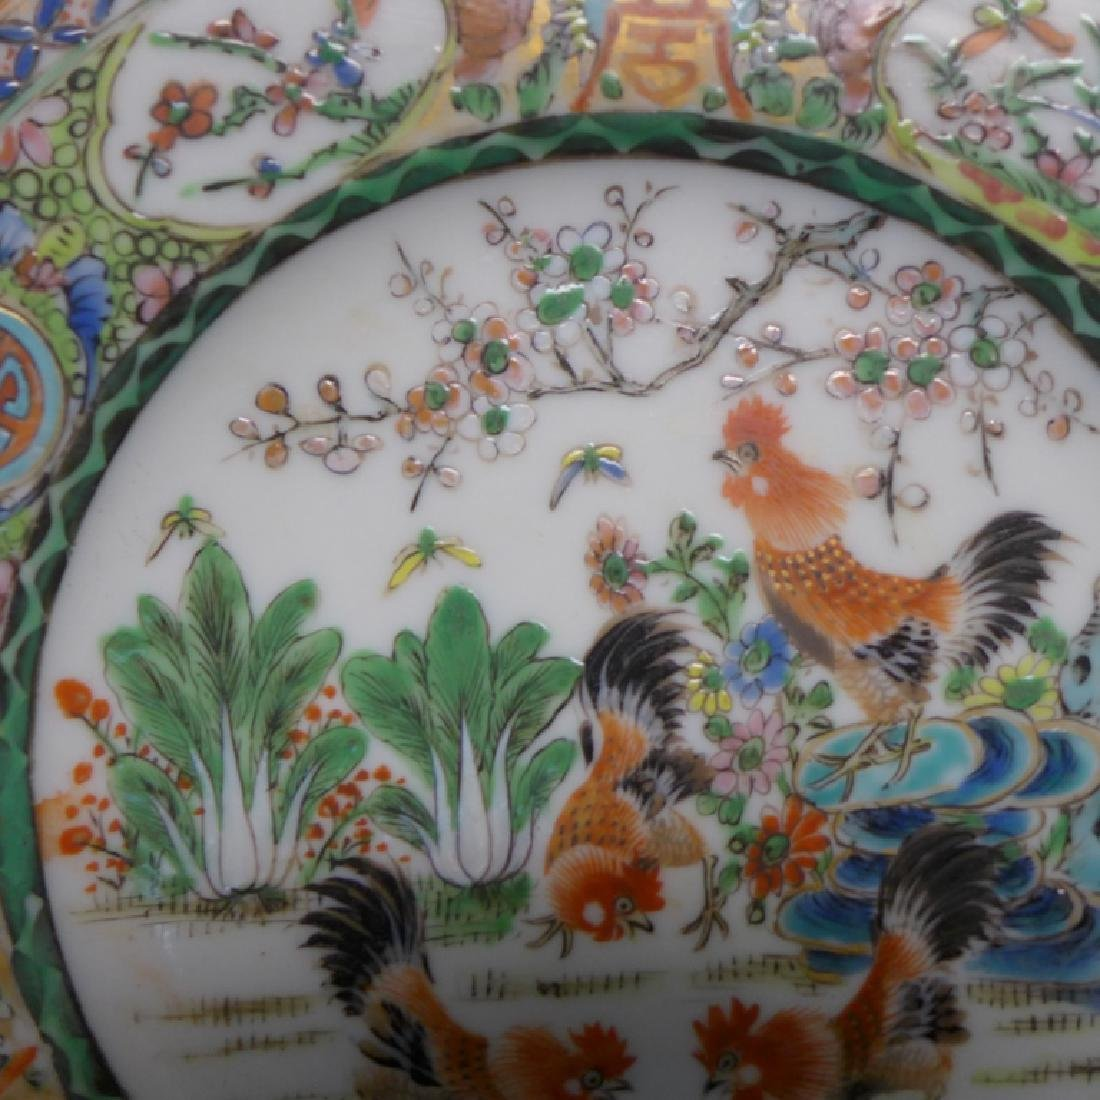 Antique Chinese Export Porcelain Rooster Plate - 7